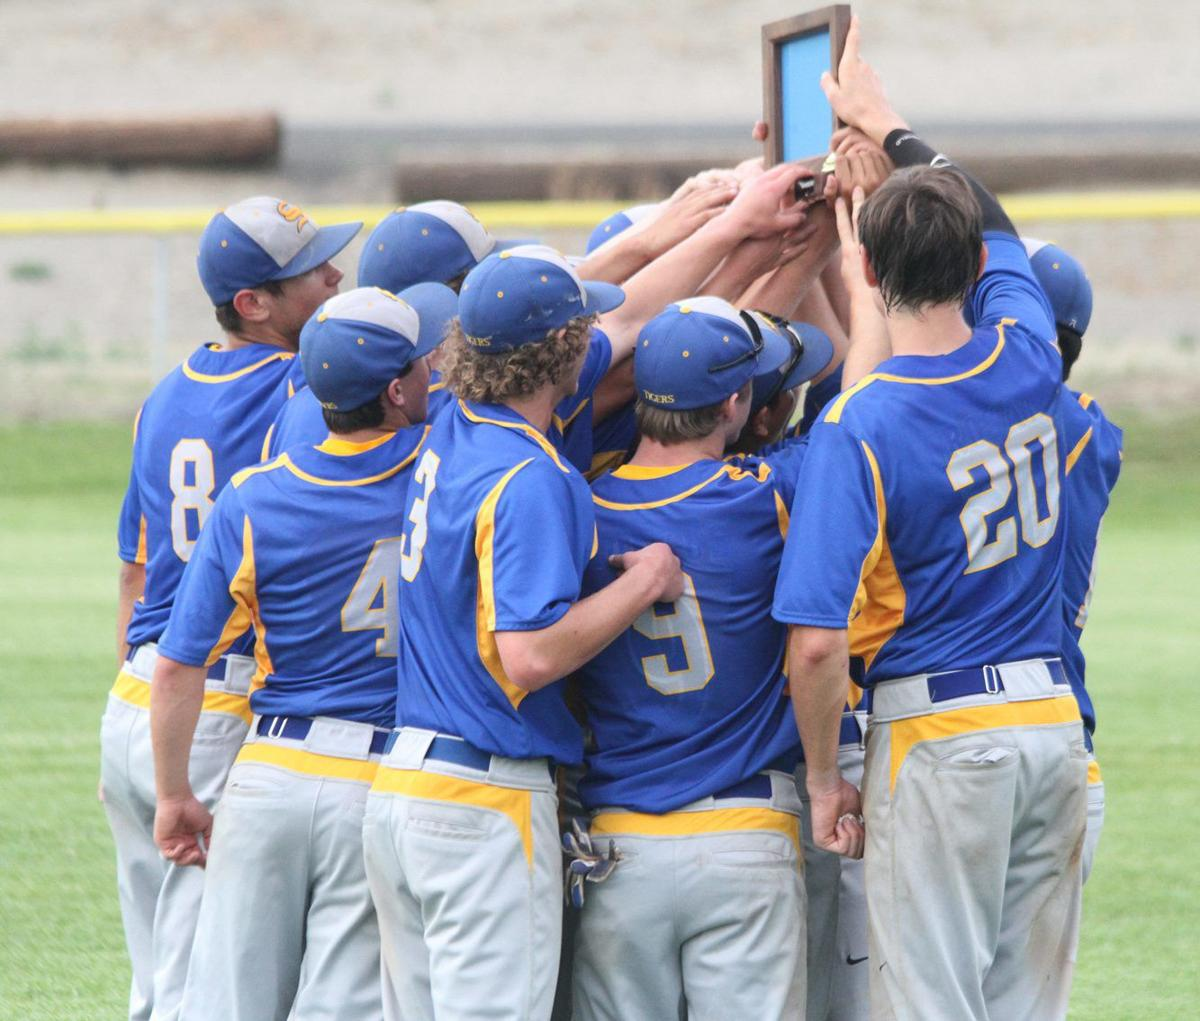 Stanfield wins district title